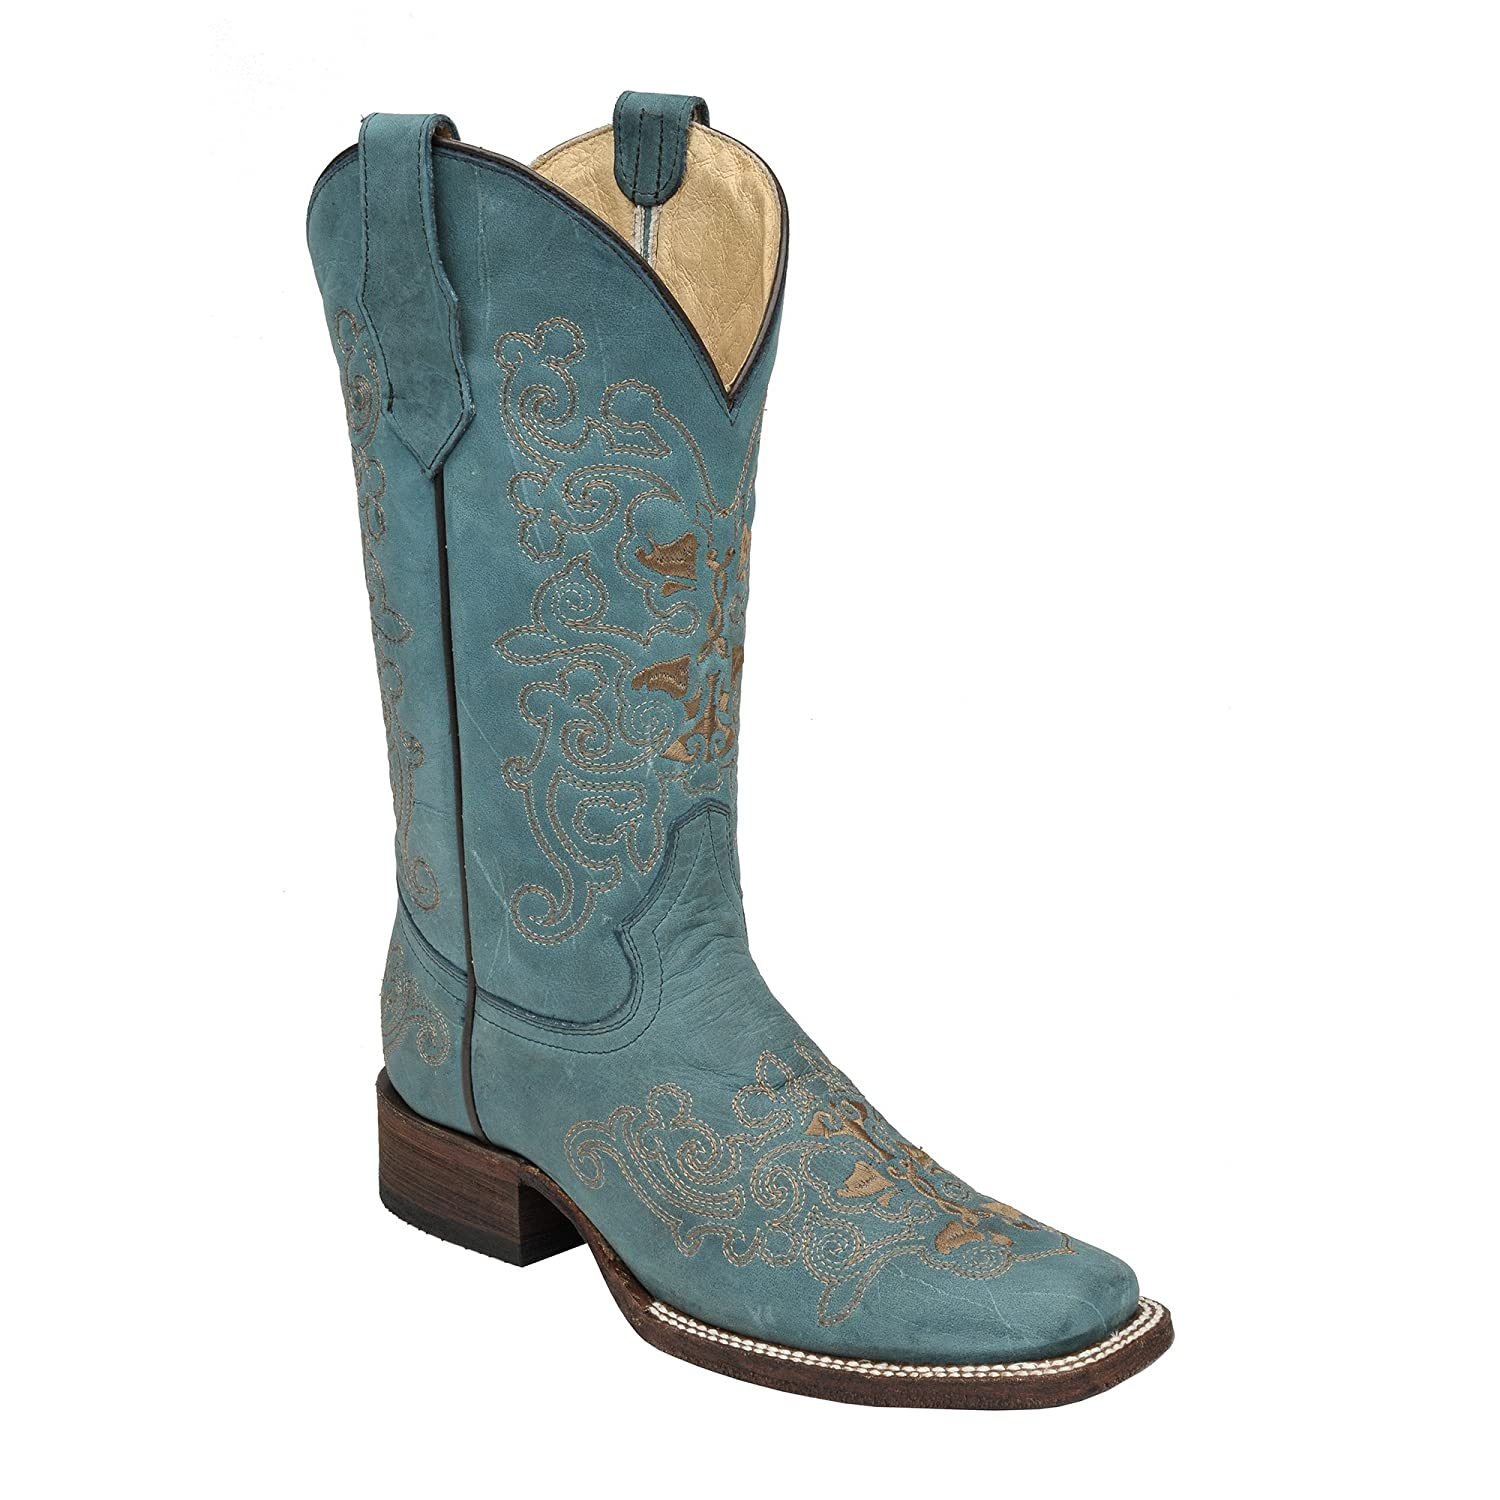 Corral Circle G Women's Square Toe Western Boots B0134EFIBO 10 B(M) US|Turquoise